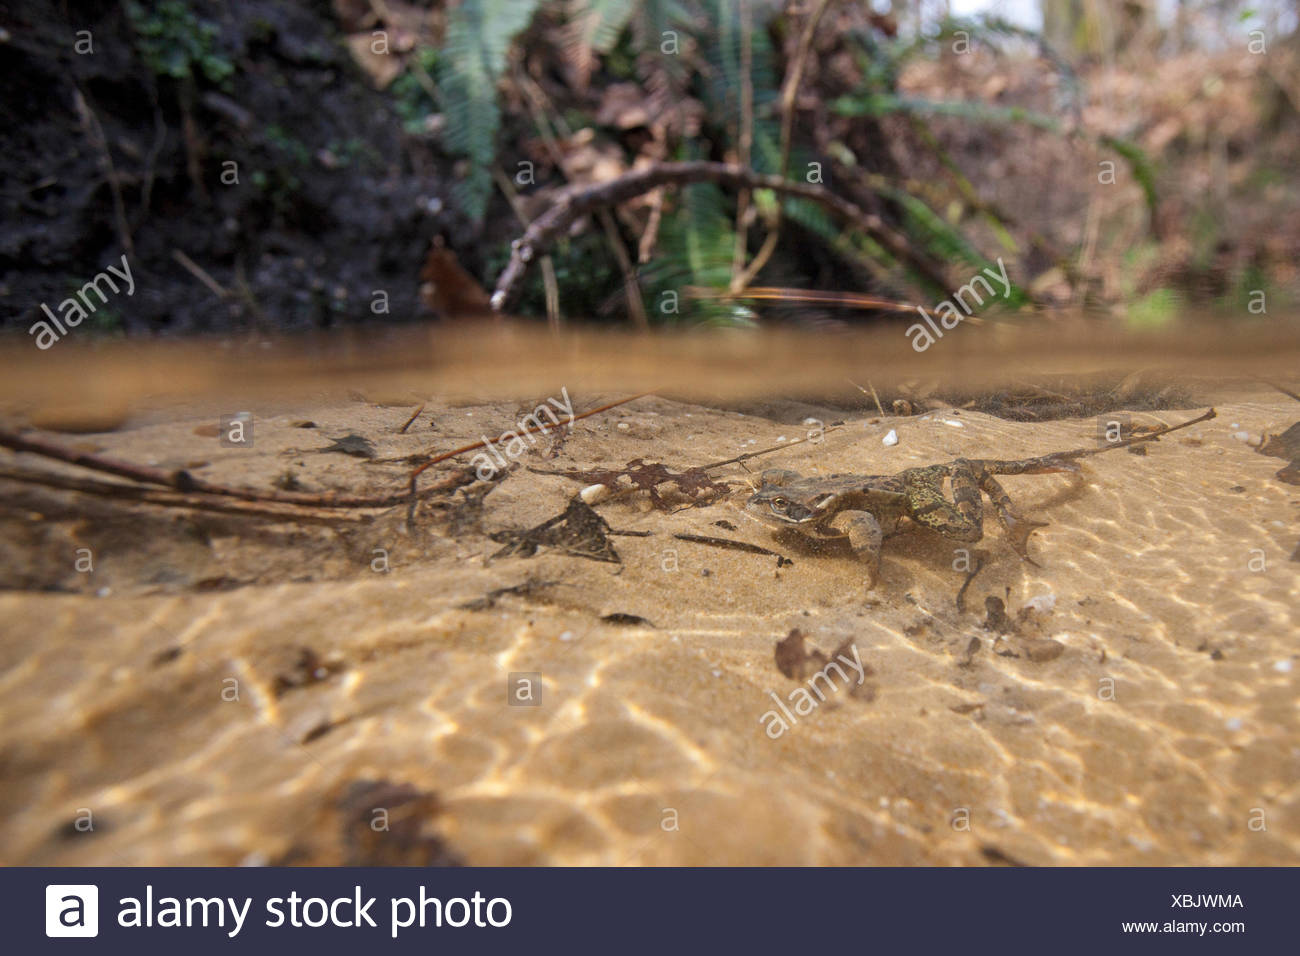 photo of a common frog swimming underwater in a stream - Stock Image